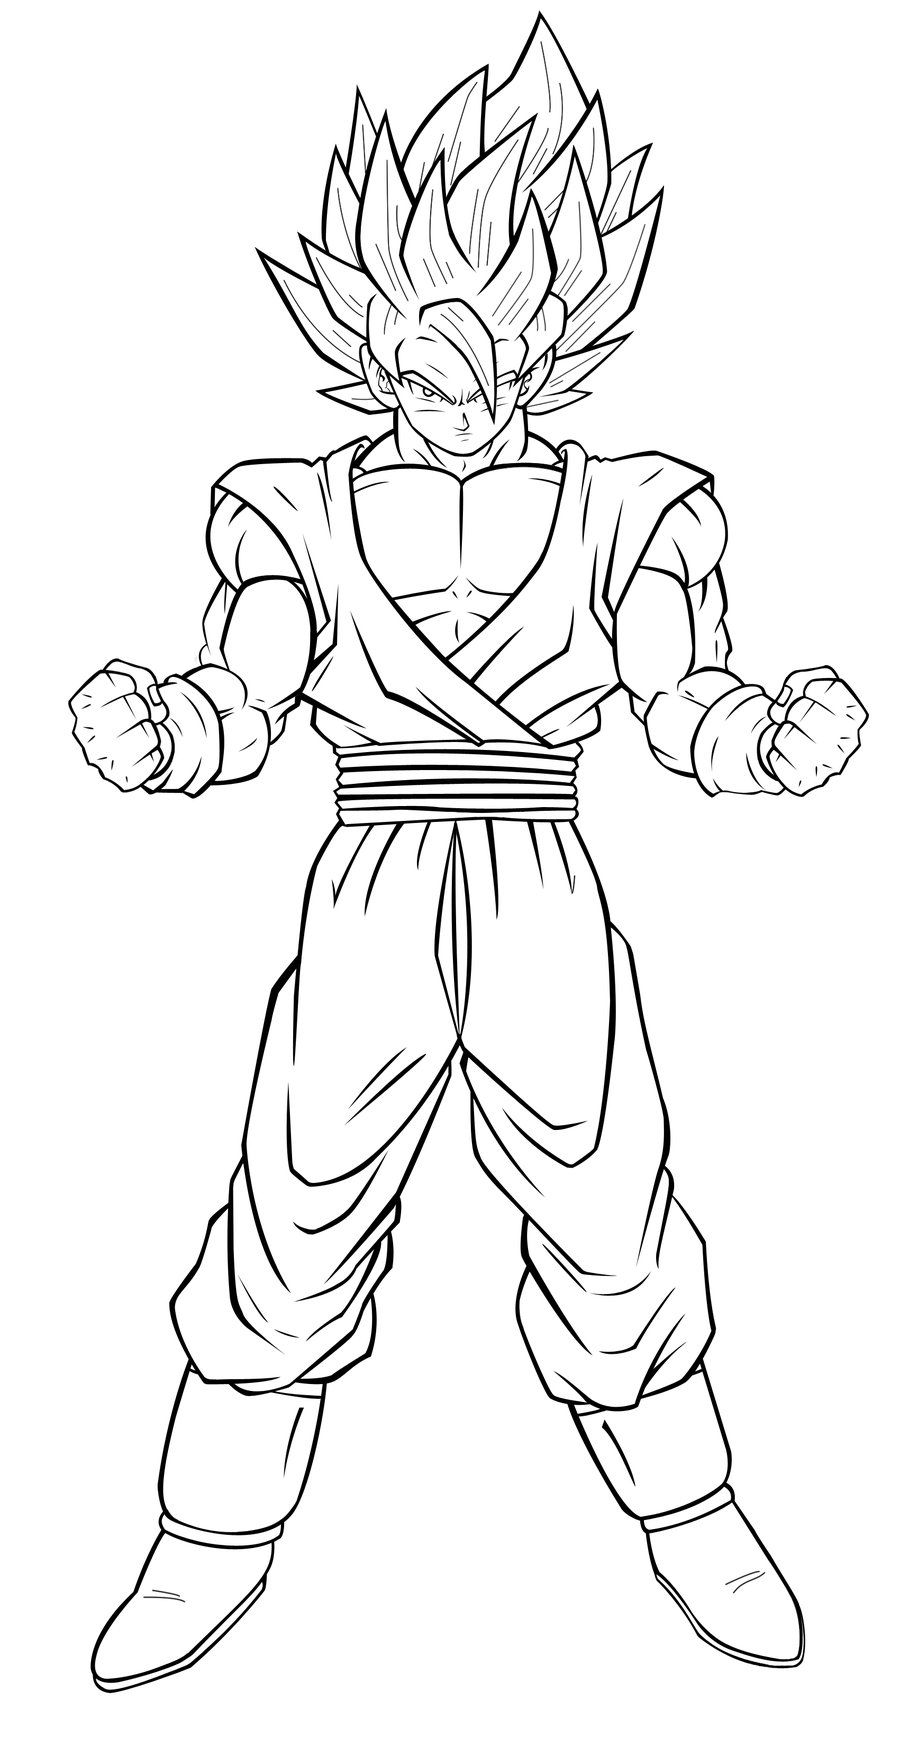 Goku Super Saiyan 4 Coloring Pages Images Coloriage Dragon Ball Z